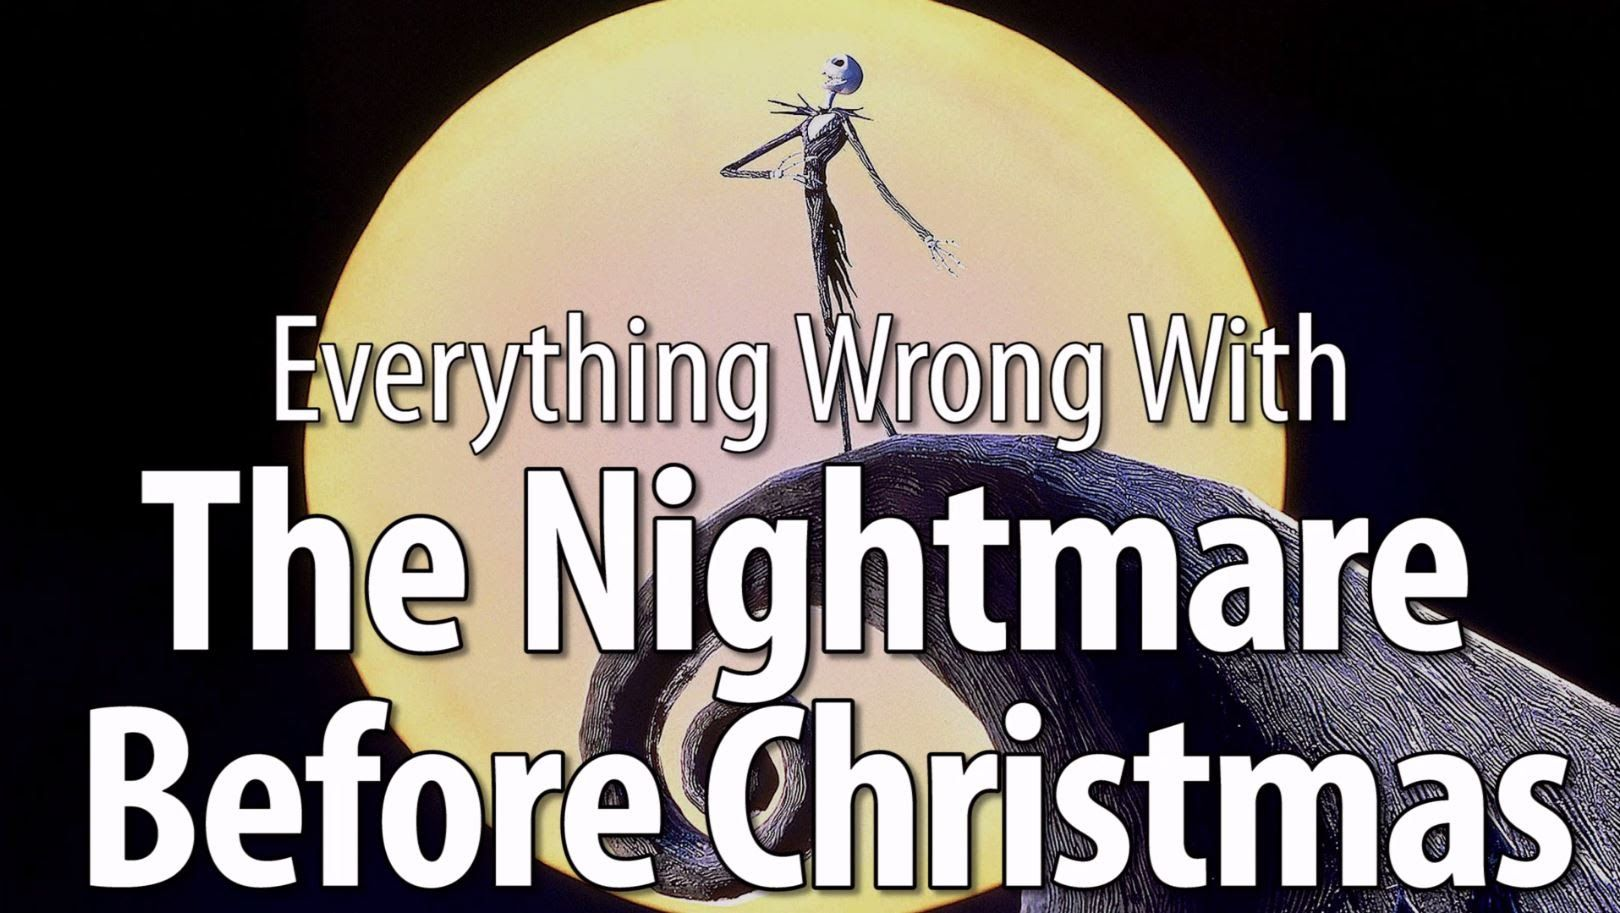 Everything Wrong With The Nightmare Before Christmas | Laughz To Be ...